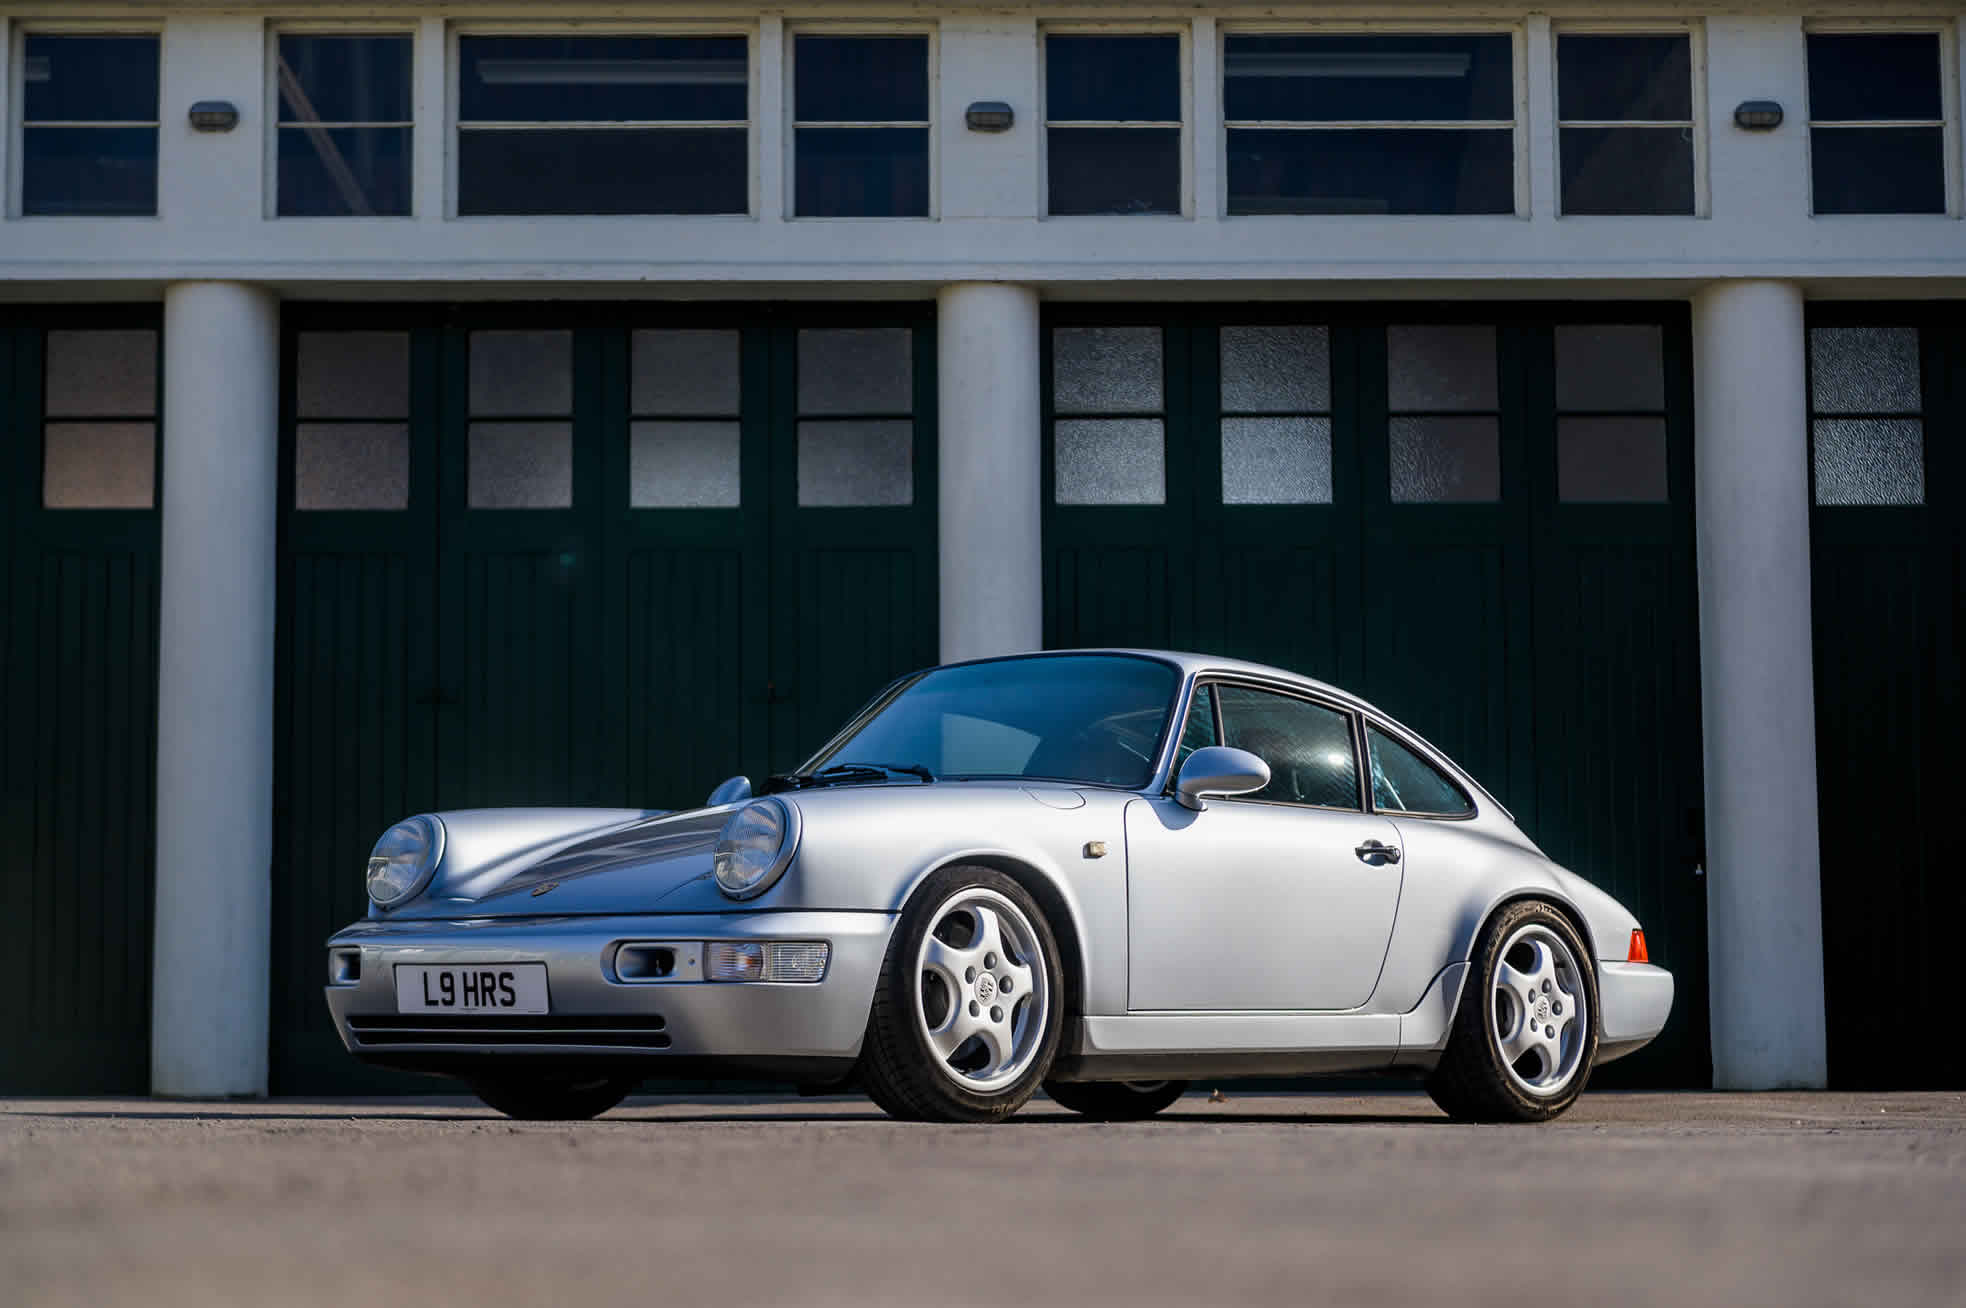 1992 Porsche 964 RS (RHD), for Sale at Sports Purpose, Bicester Heritage, Oxon - front quarter